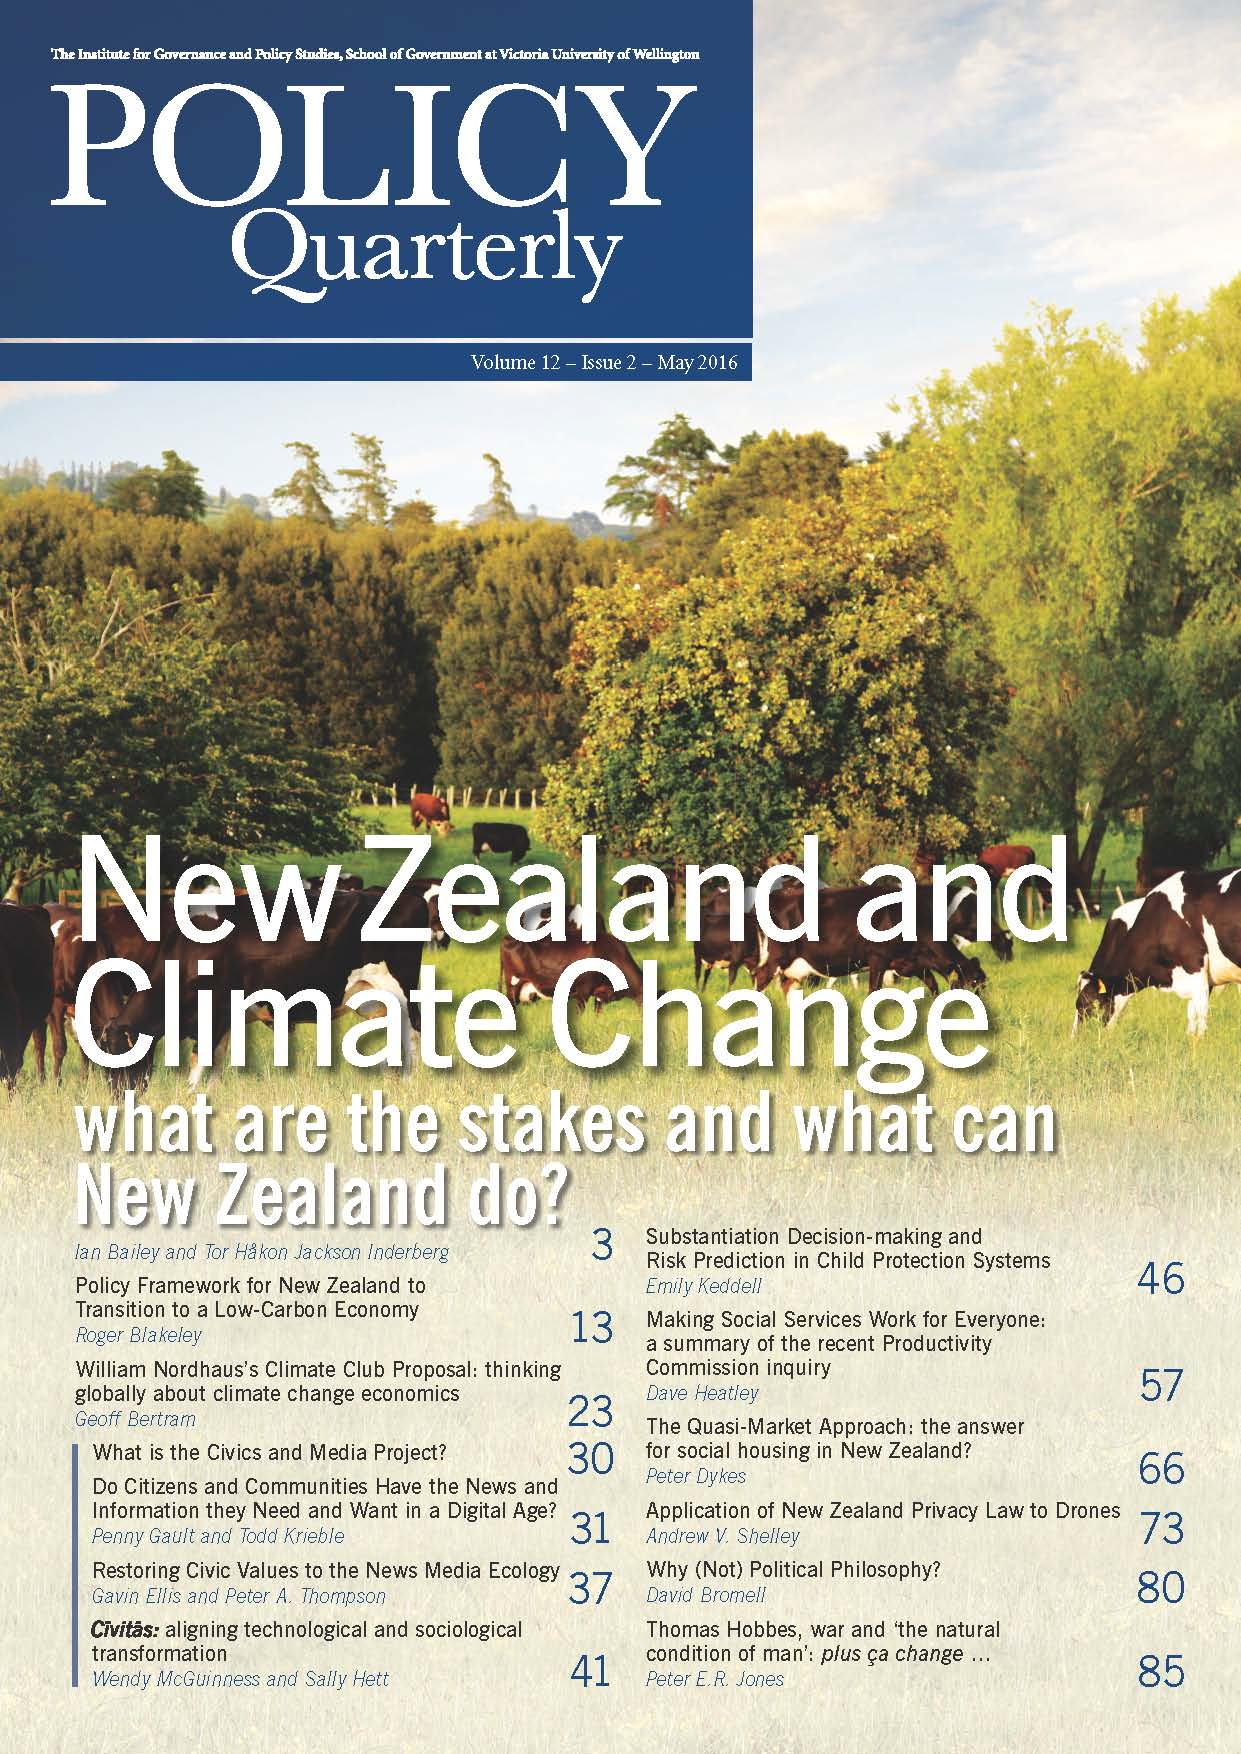 Policy Quarterly volume 12 issue 2 2016